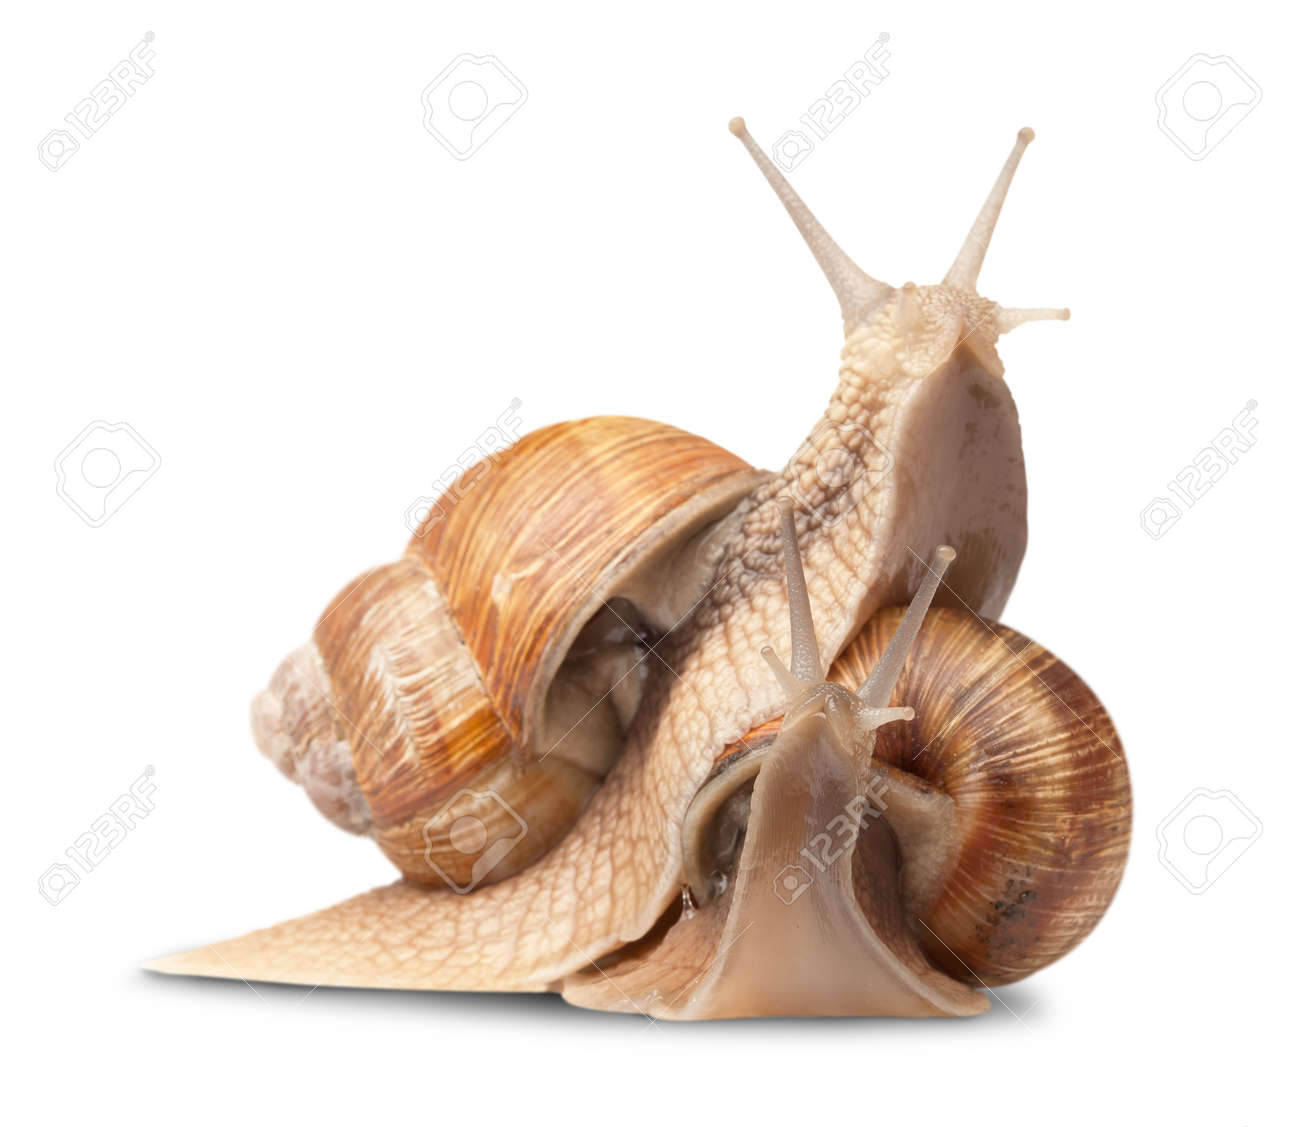 two big snails posing. isolated on white - 154813757